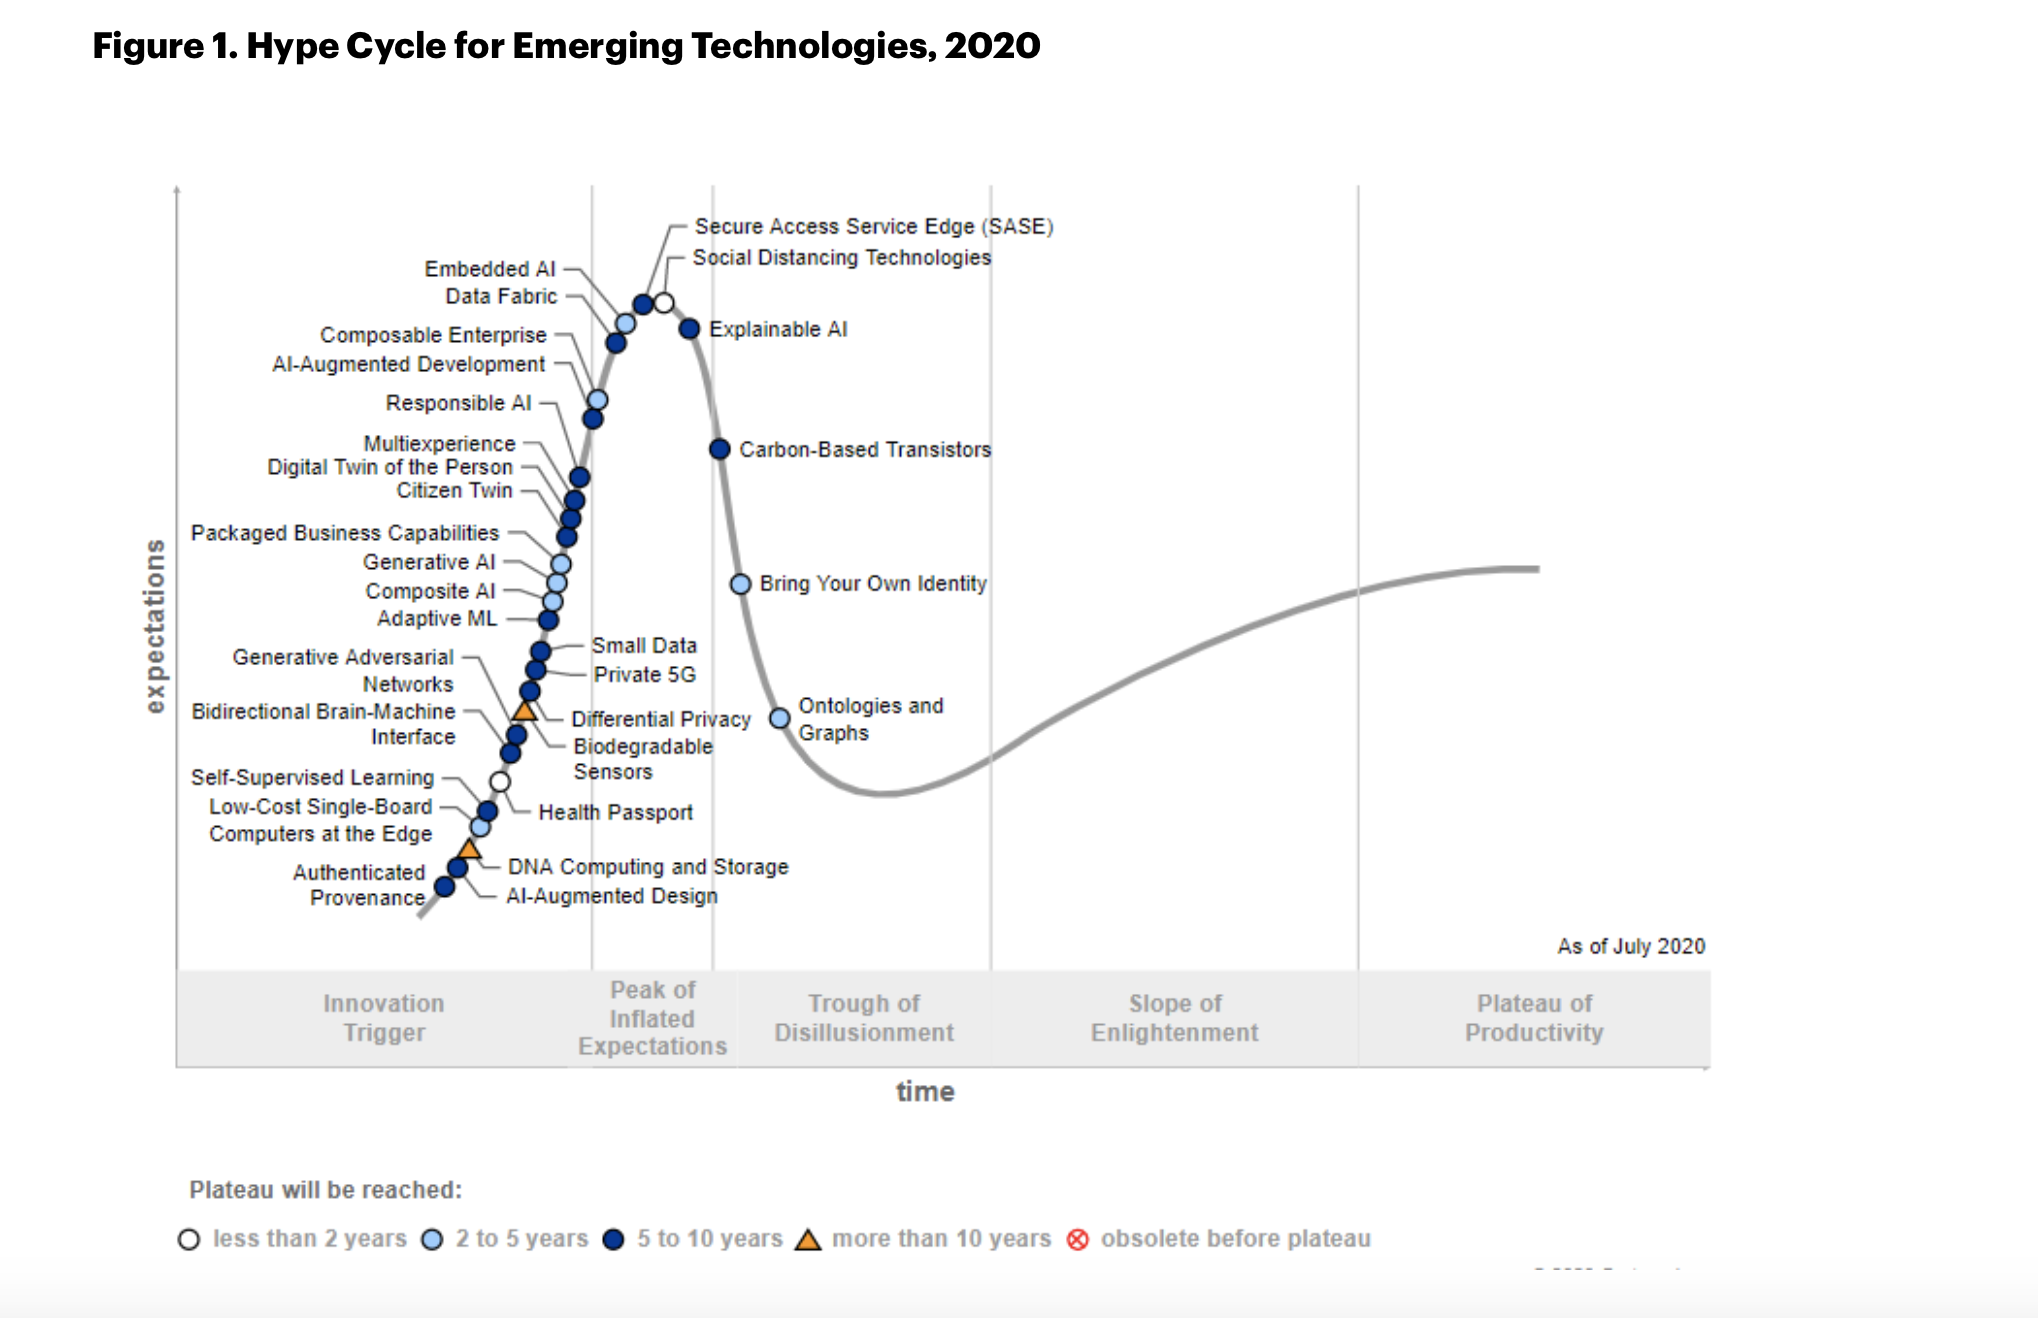 Hype Cycle for Emerging Technologies Gartner